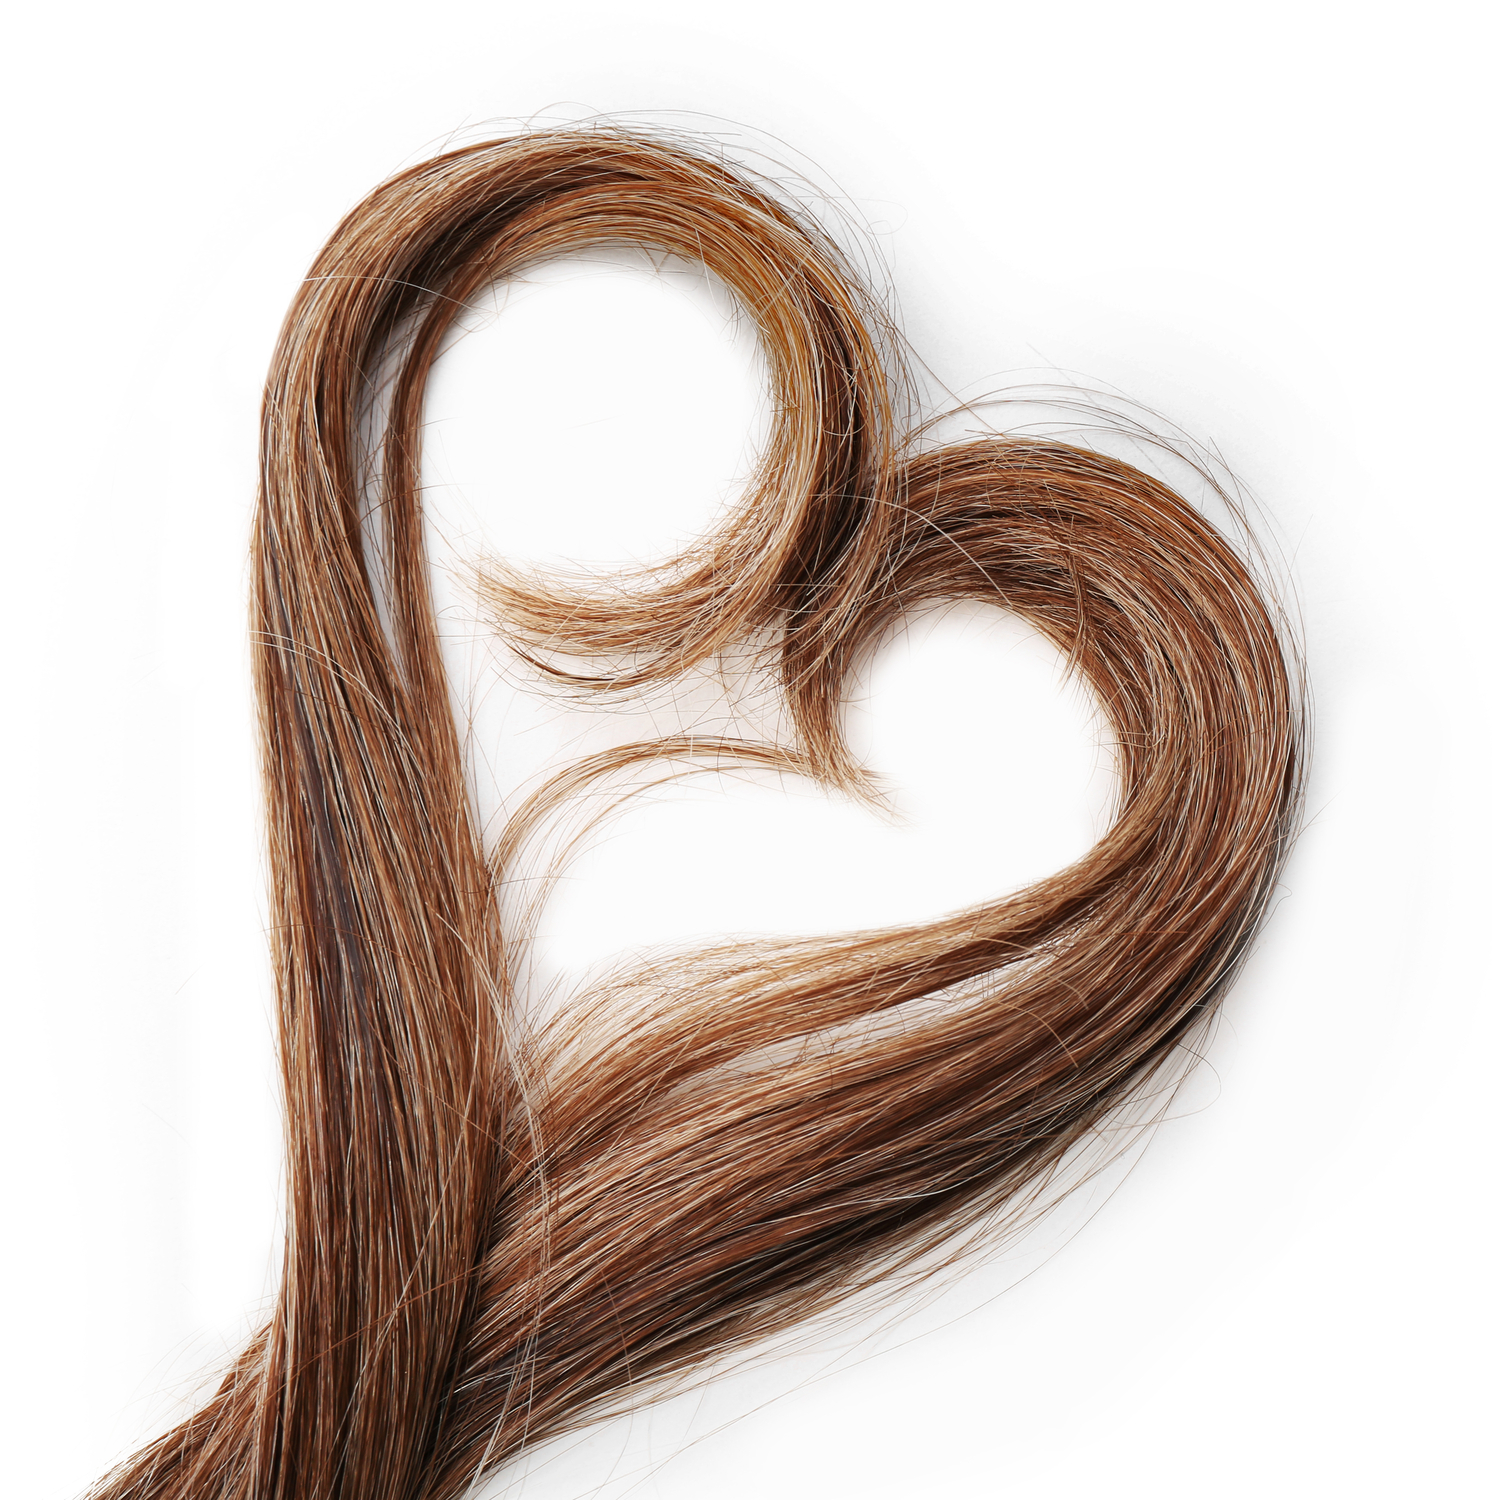 How to care for your extensions